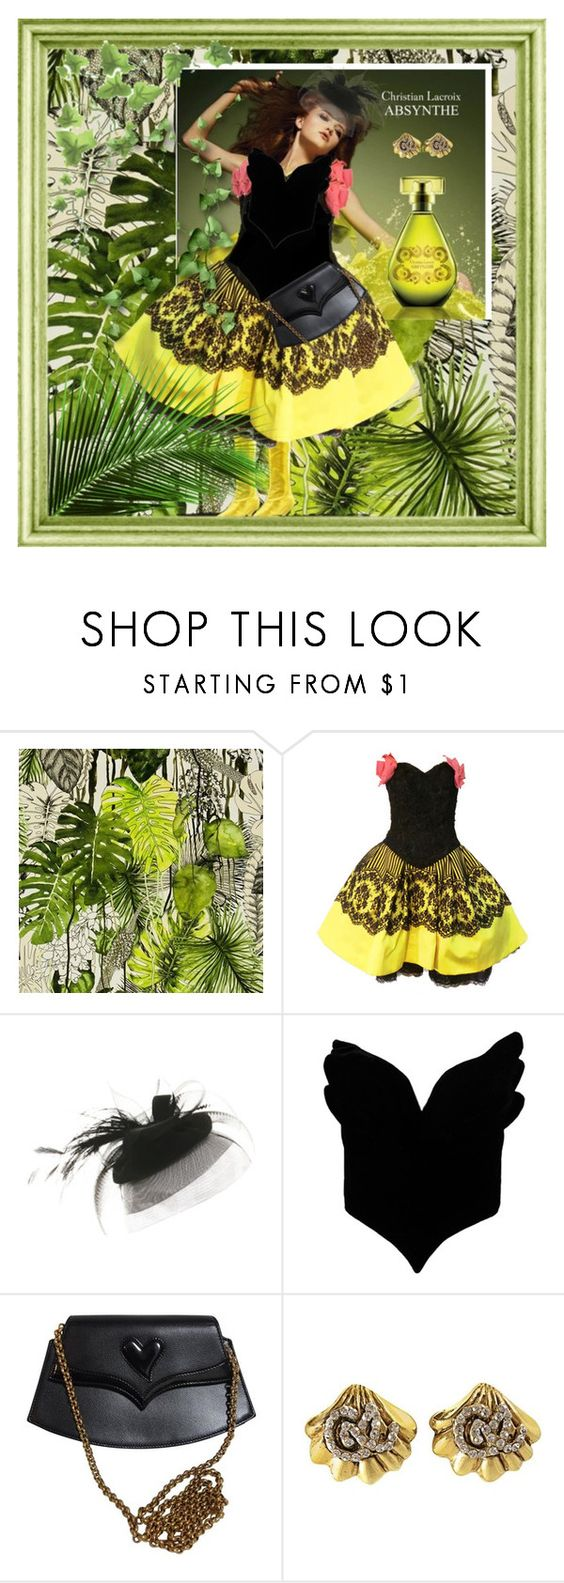 """Sister Christian"" by skailees ❤ liked on Polyvore featuring Christian Lacroix, VIVIER and Thierry Mugler"